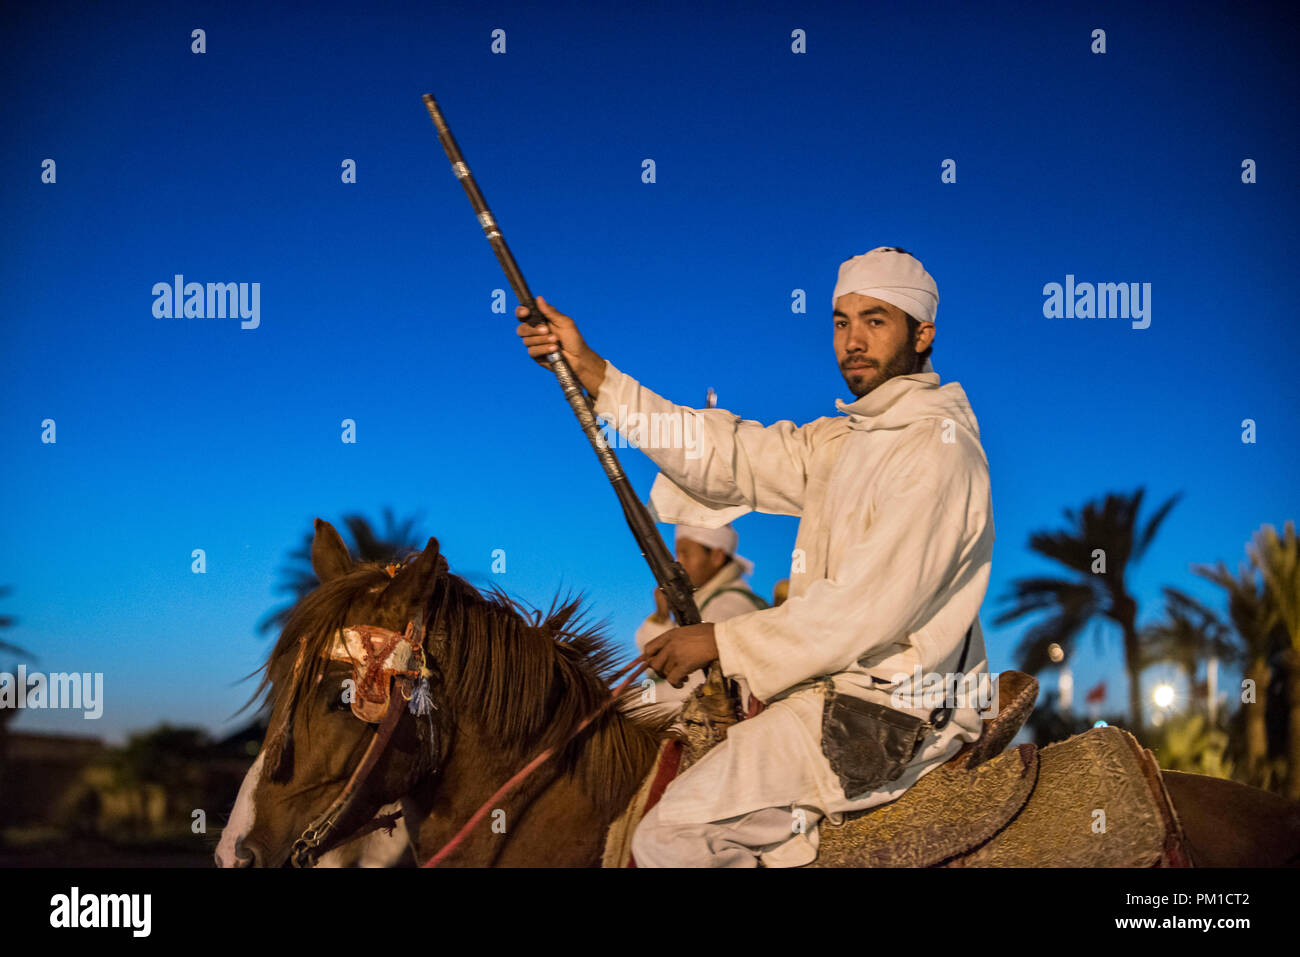 26-02-15, Marrakech, Morocco. Man in traditional dress on horseback with gun at the tourist attraction of Fantasia / Chez Ali. Photo © Simon Grosset - Stock Image